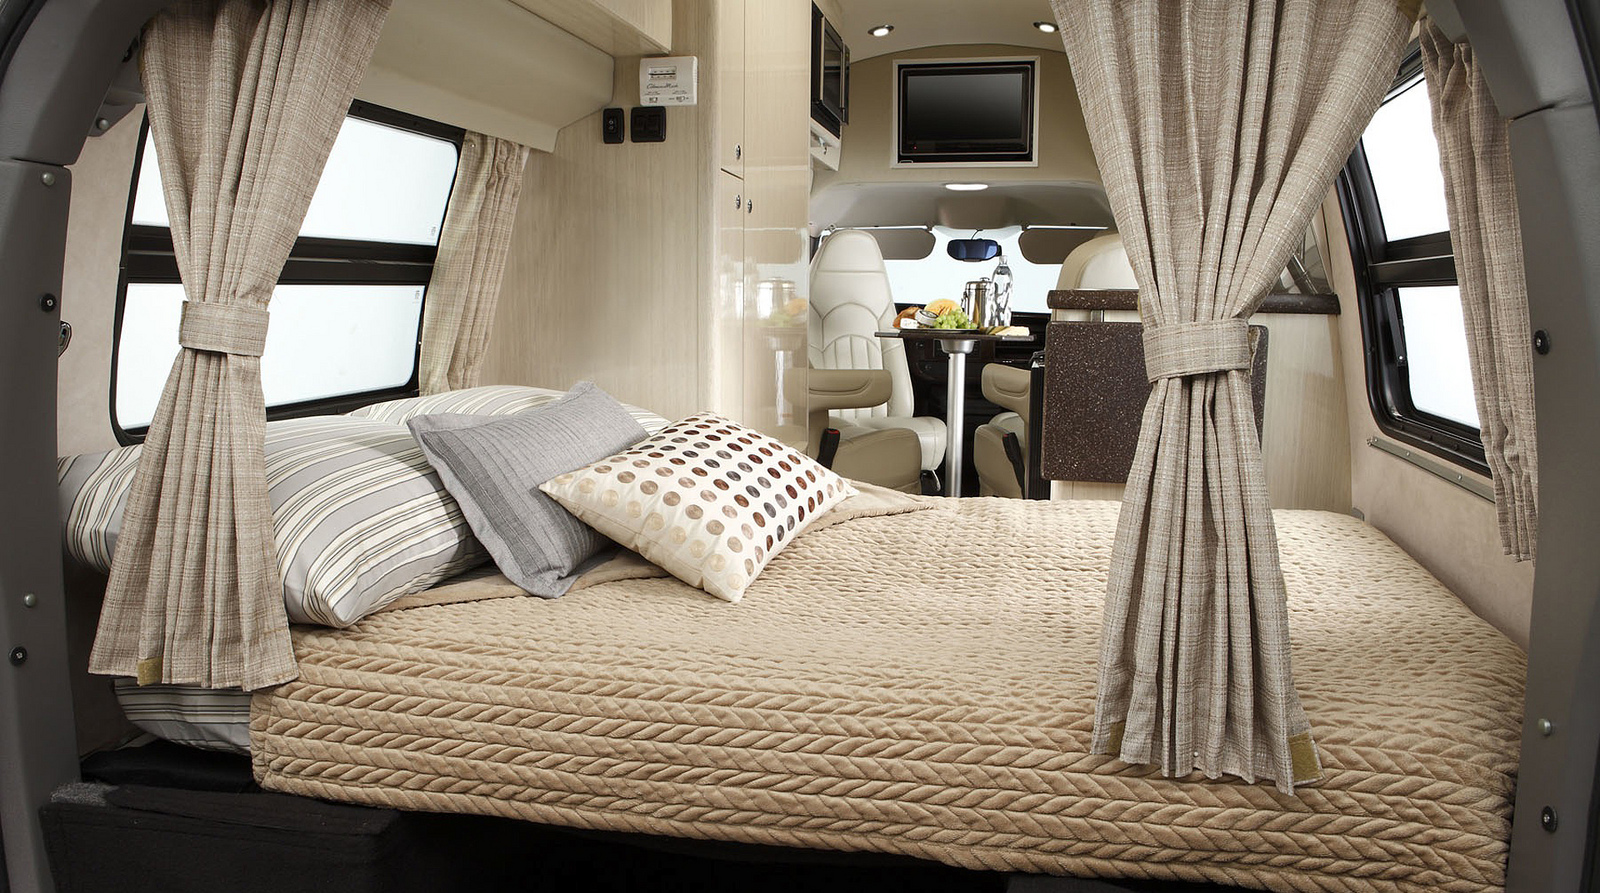 Airstream Avenue Interior